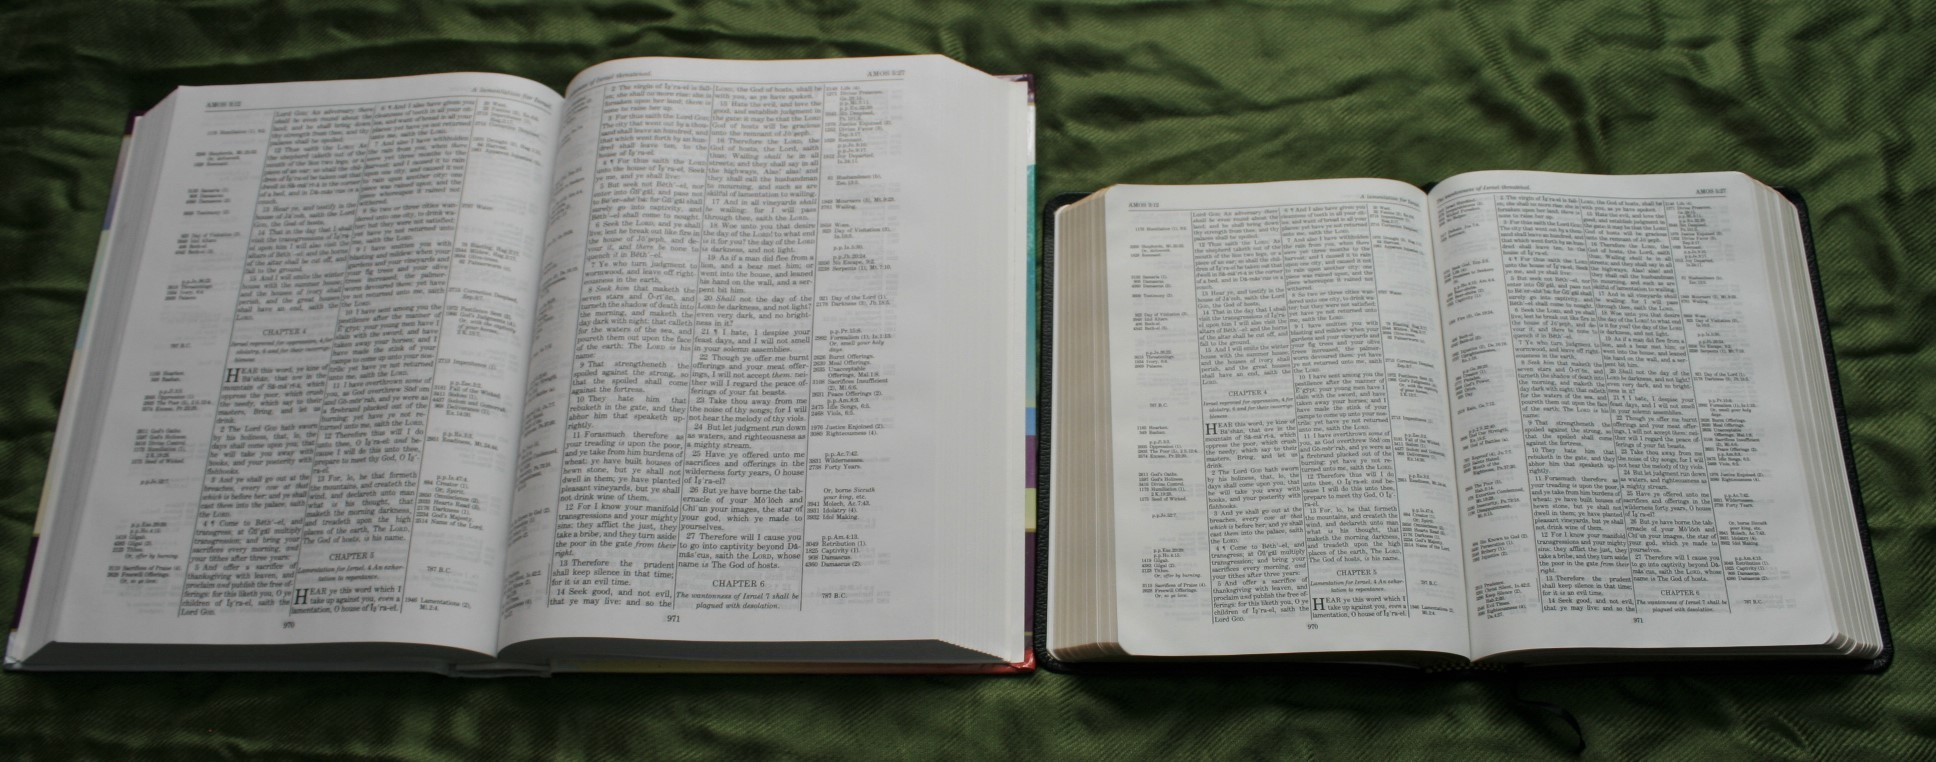 Handy Size Thompson Chain Reference Bible KJV (28)